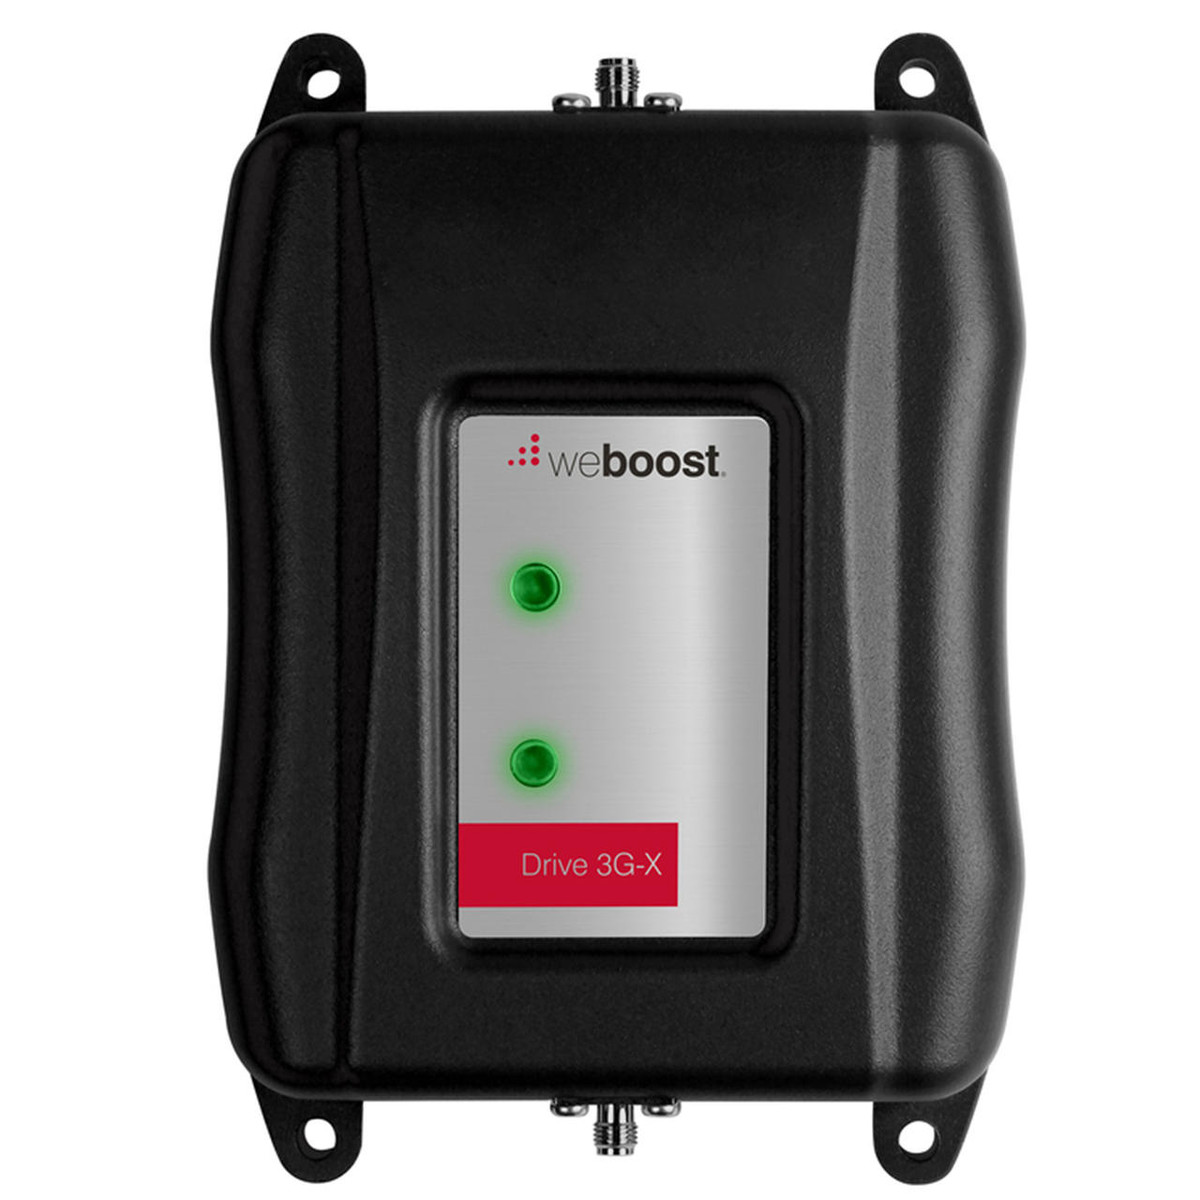 weBoost Wilson weBoost Drive 3G-X Cell Phone Signal Booster or 470111